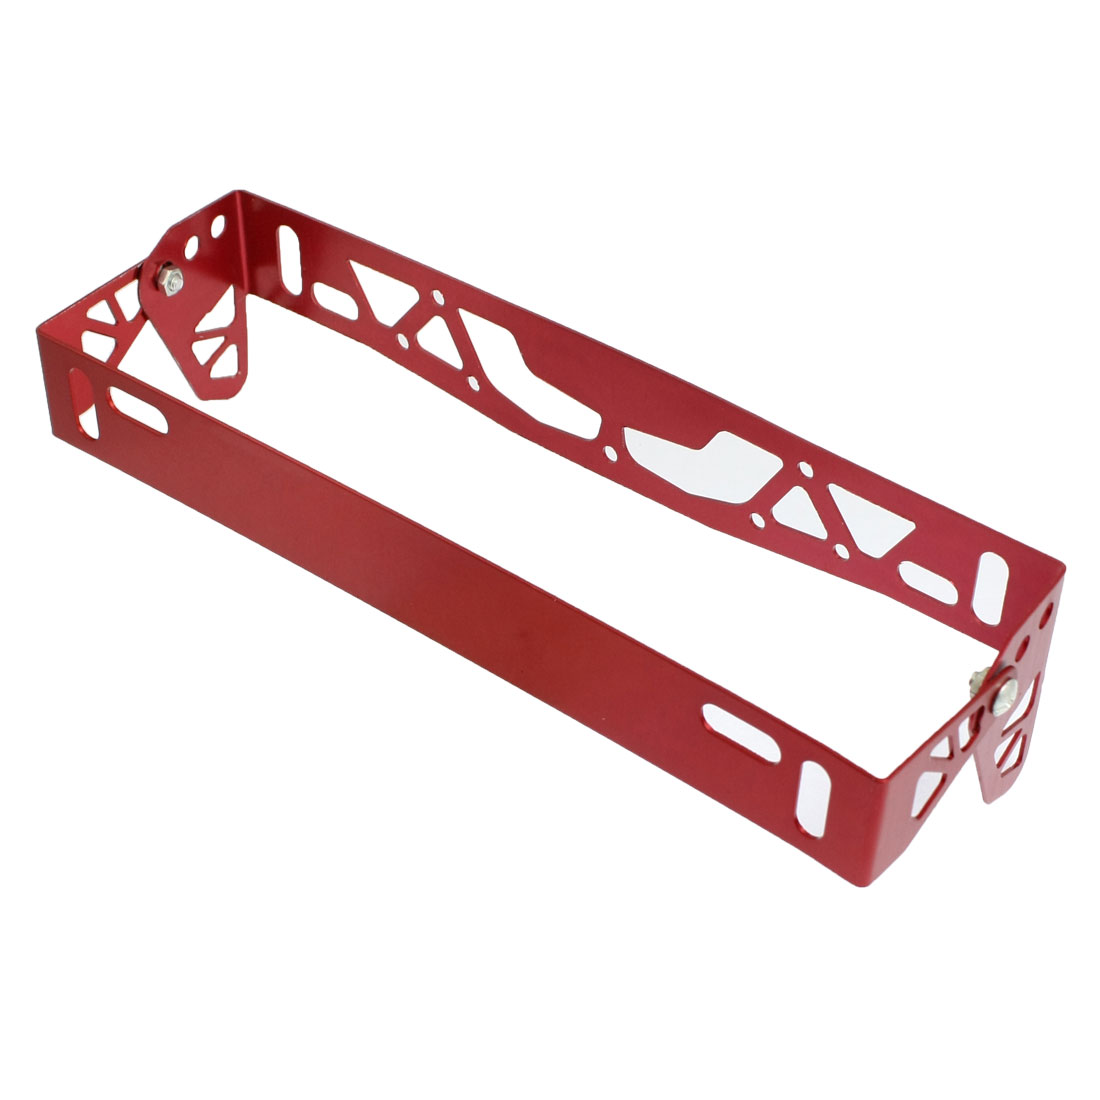 Auto Car Truck Burgundy Metal License Plate Bracket Holder Replacement